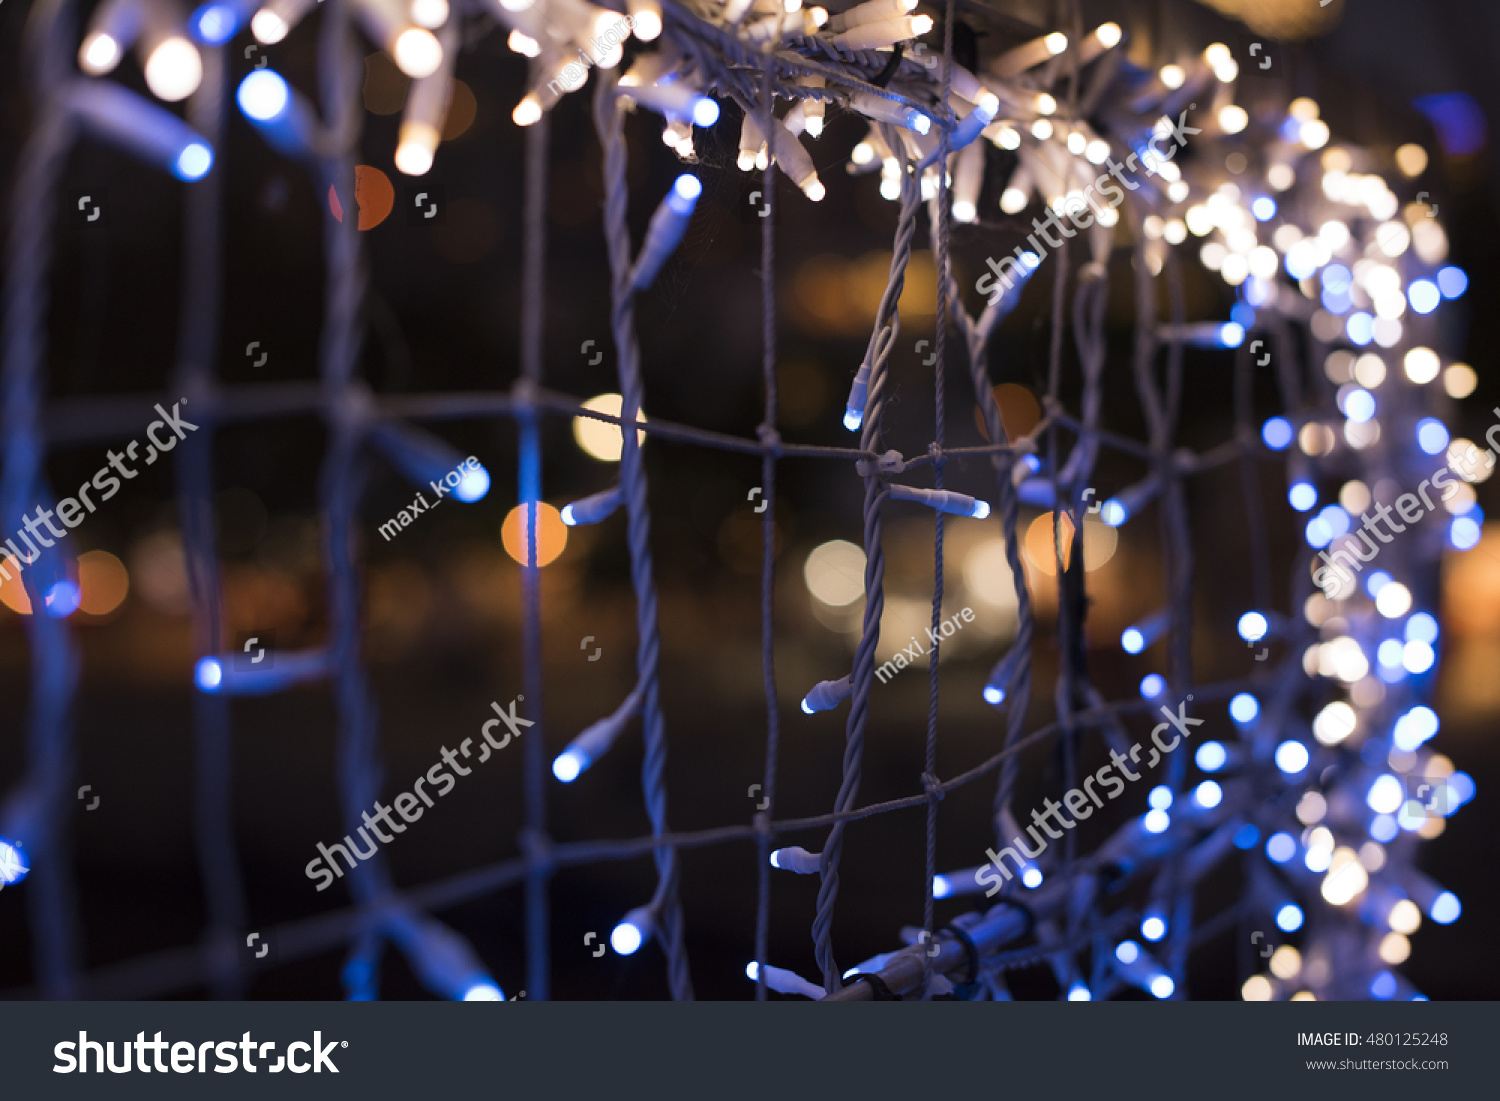 Christmas Led Lights Canada Colorful Background Led Lights Preparation Christmas Stock Photo